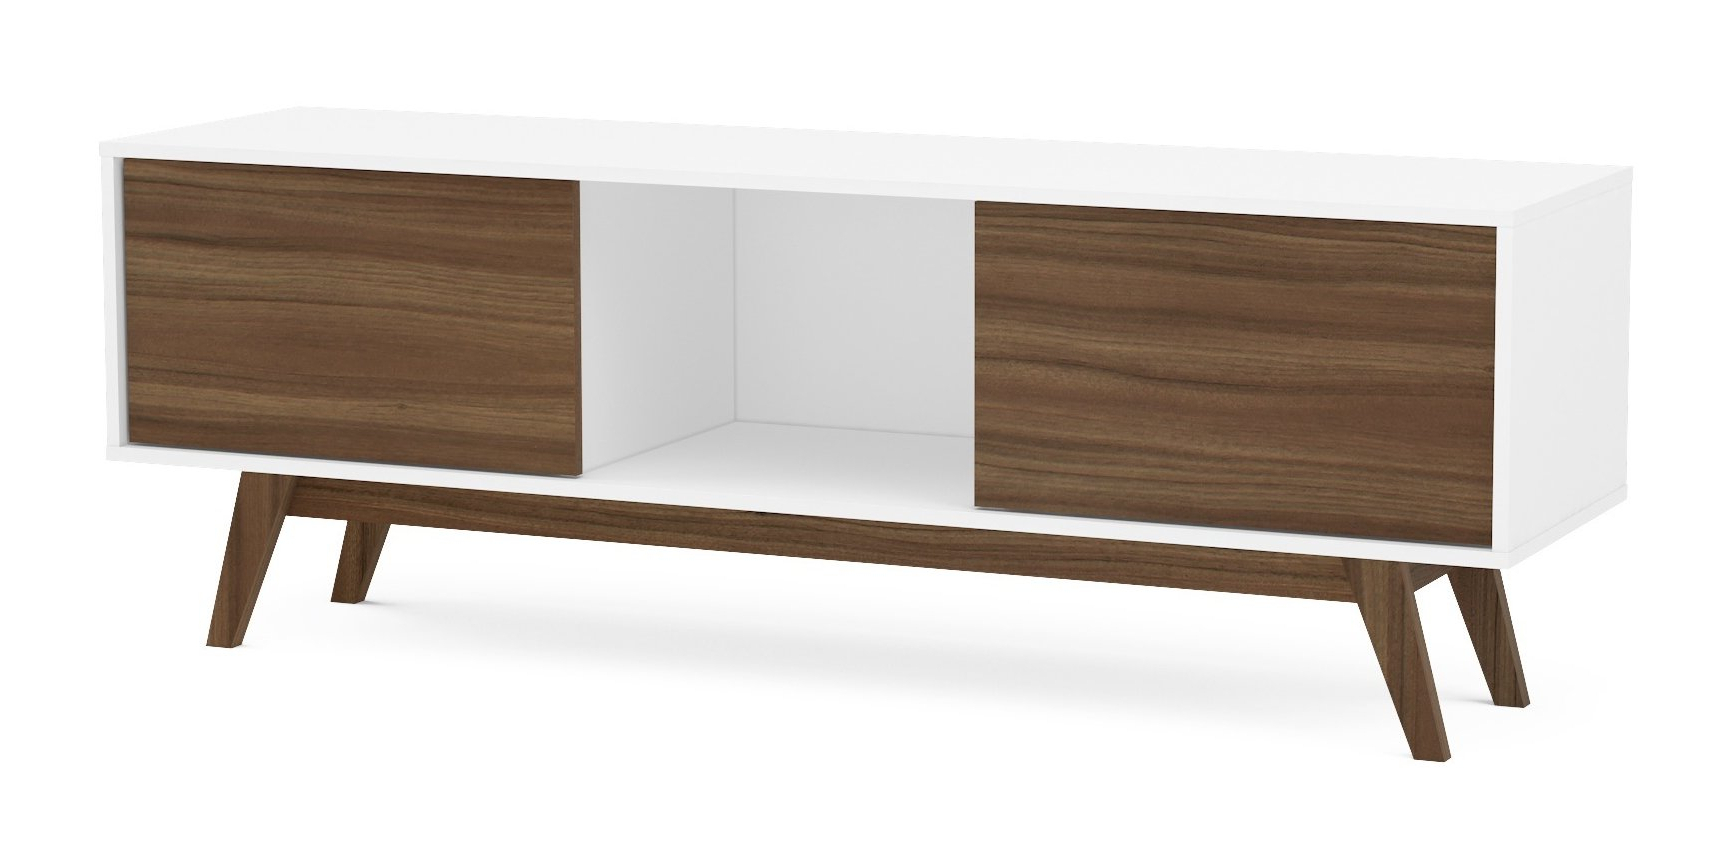 Contemporary Tv Stands For Flat Screens Within Latest Modern Tv Stands & Entertainment Centers (View 5 of 20)